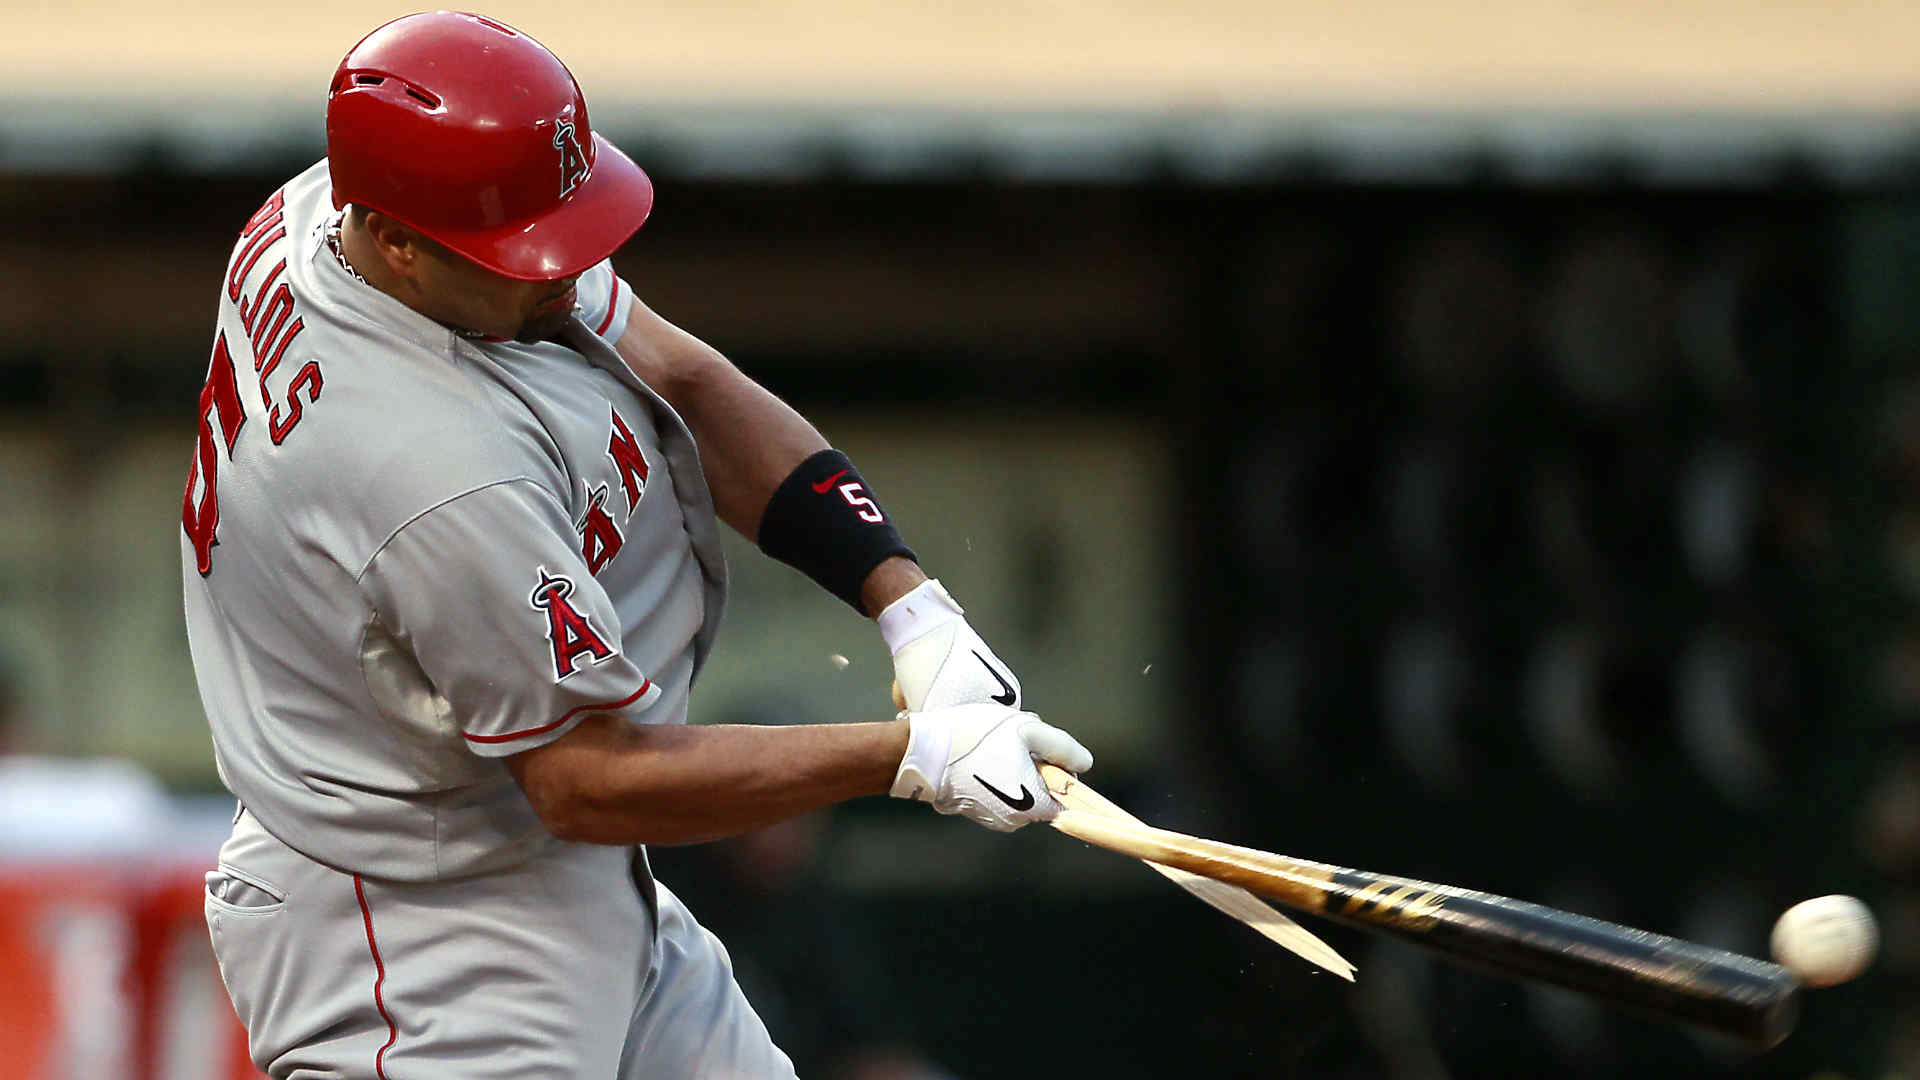 Watch out for these potential 1B busts in fantasy baseball drafts